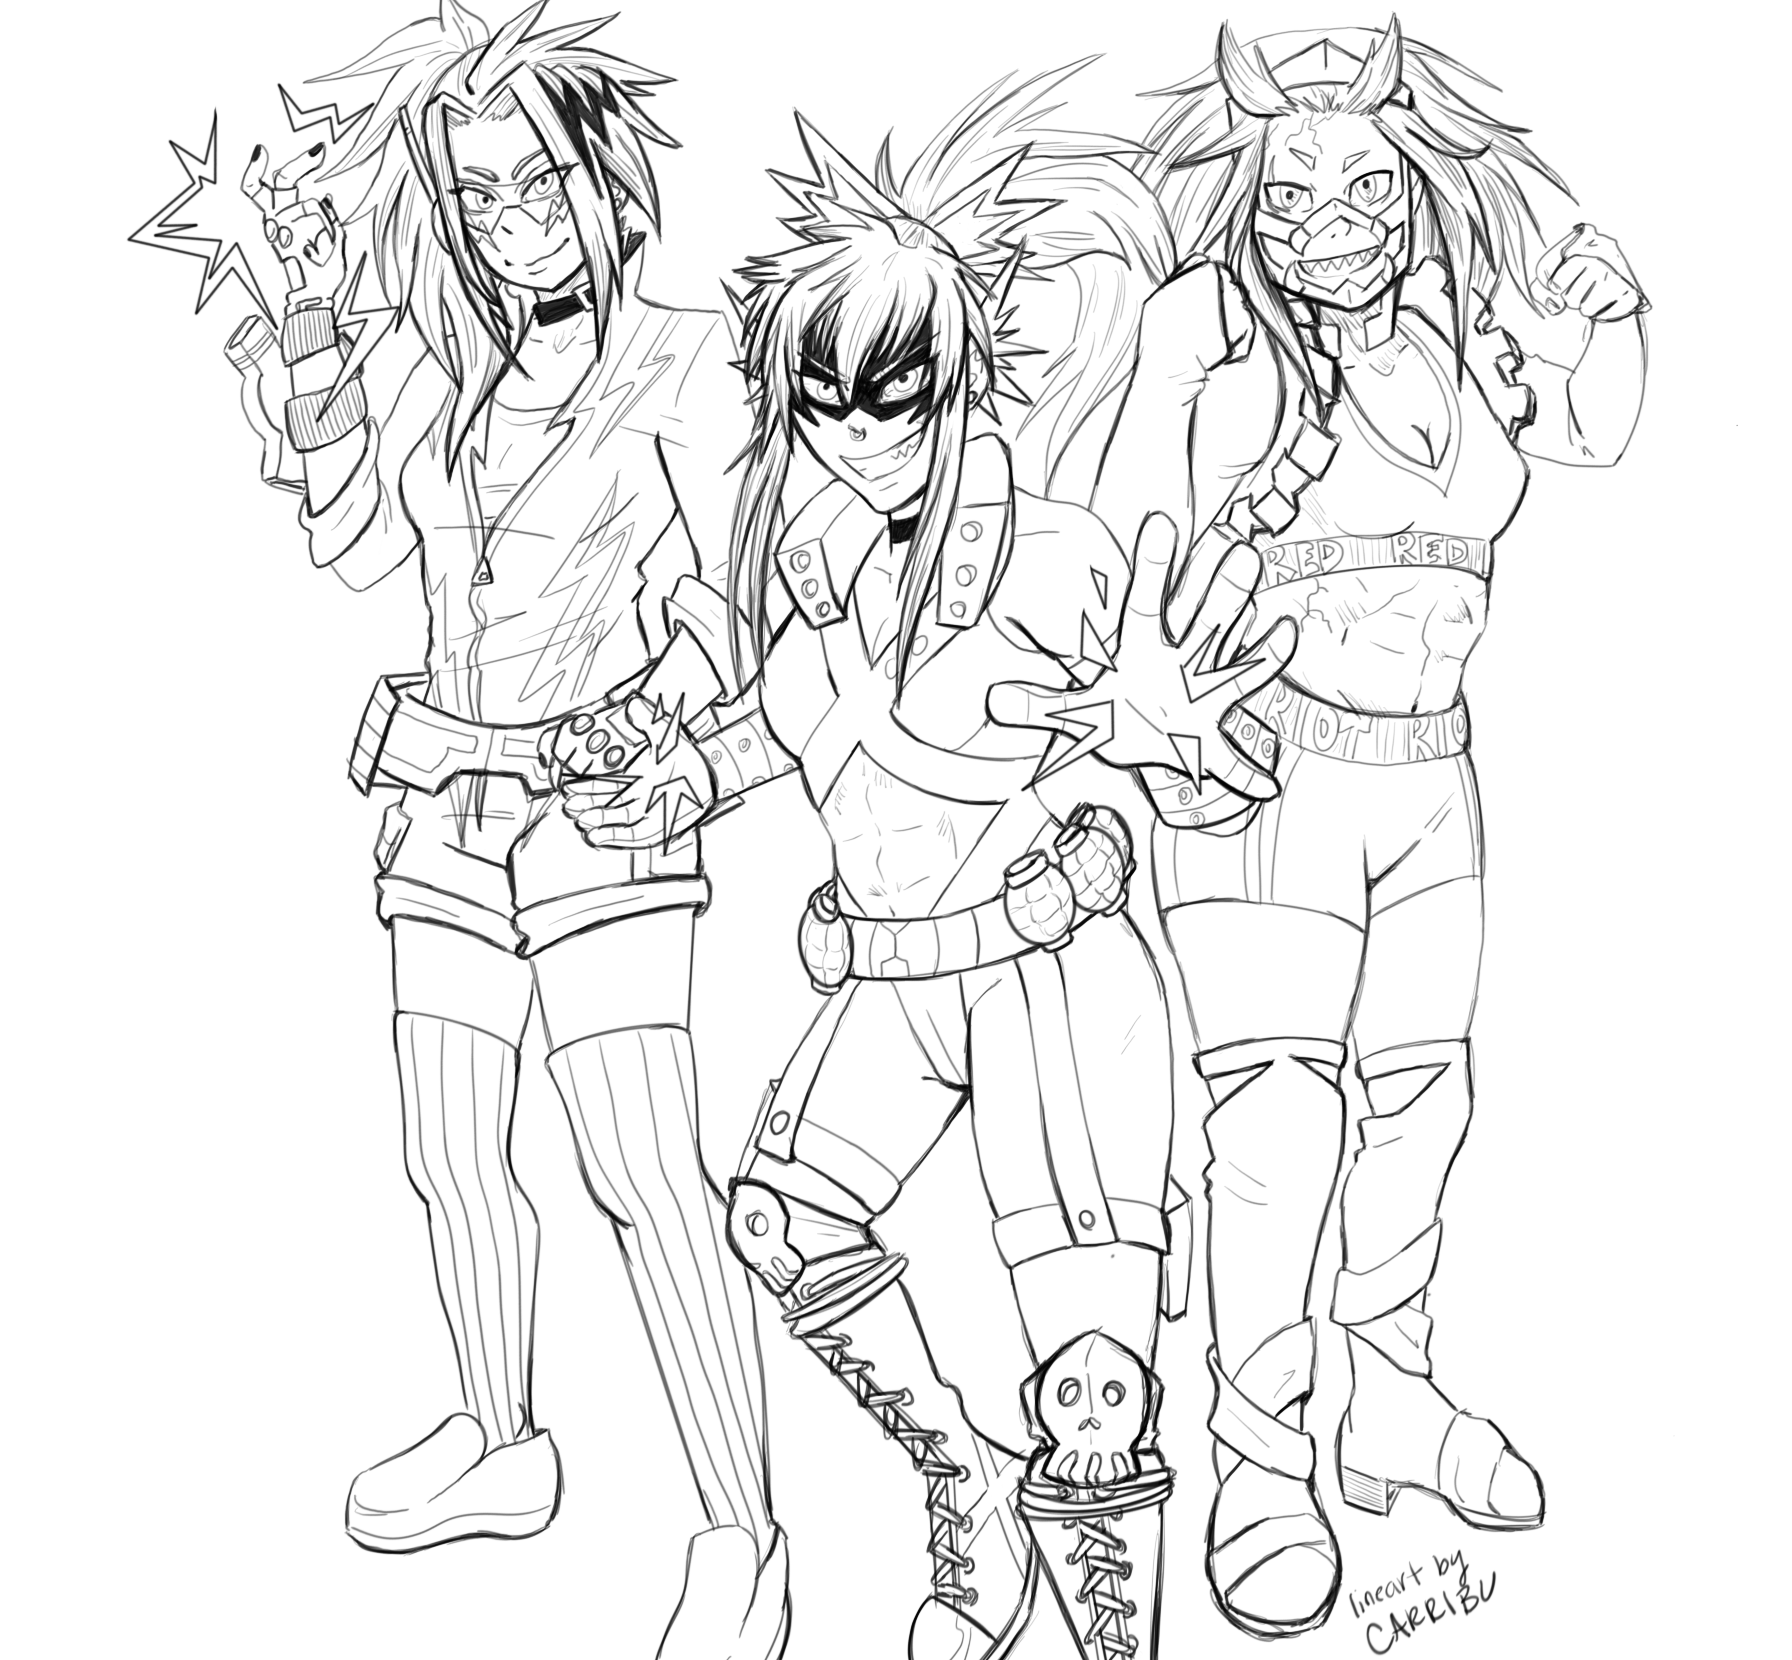 Bakusquad Genderbent Hero Costume Coloring Page by carribu on DeviantArt